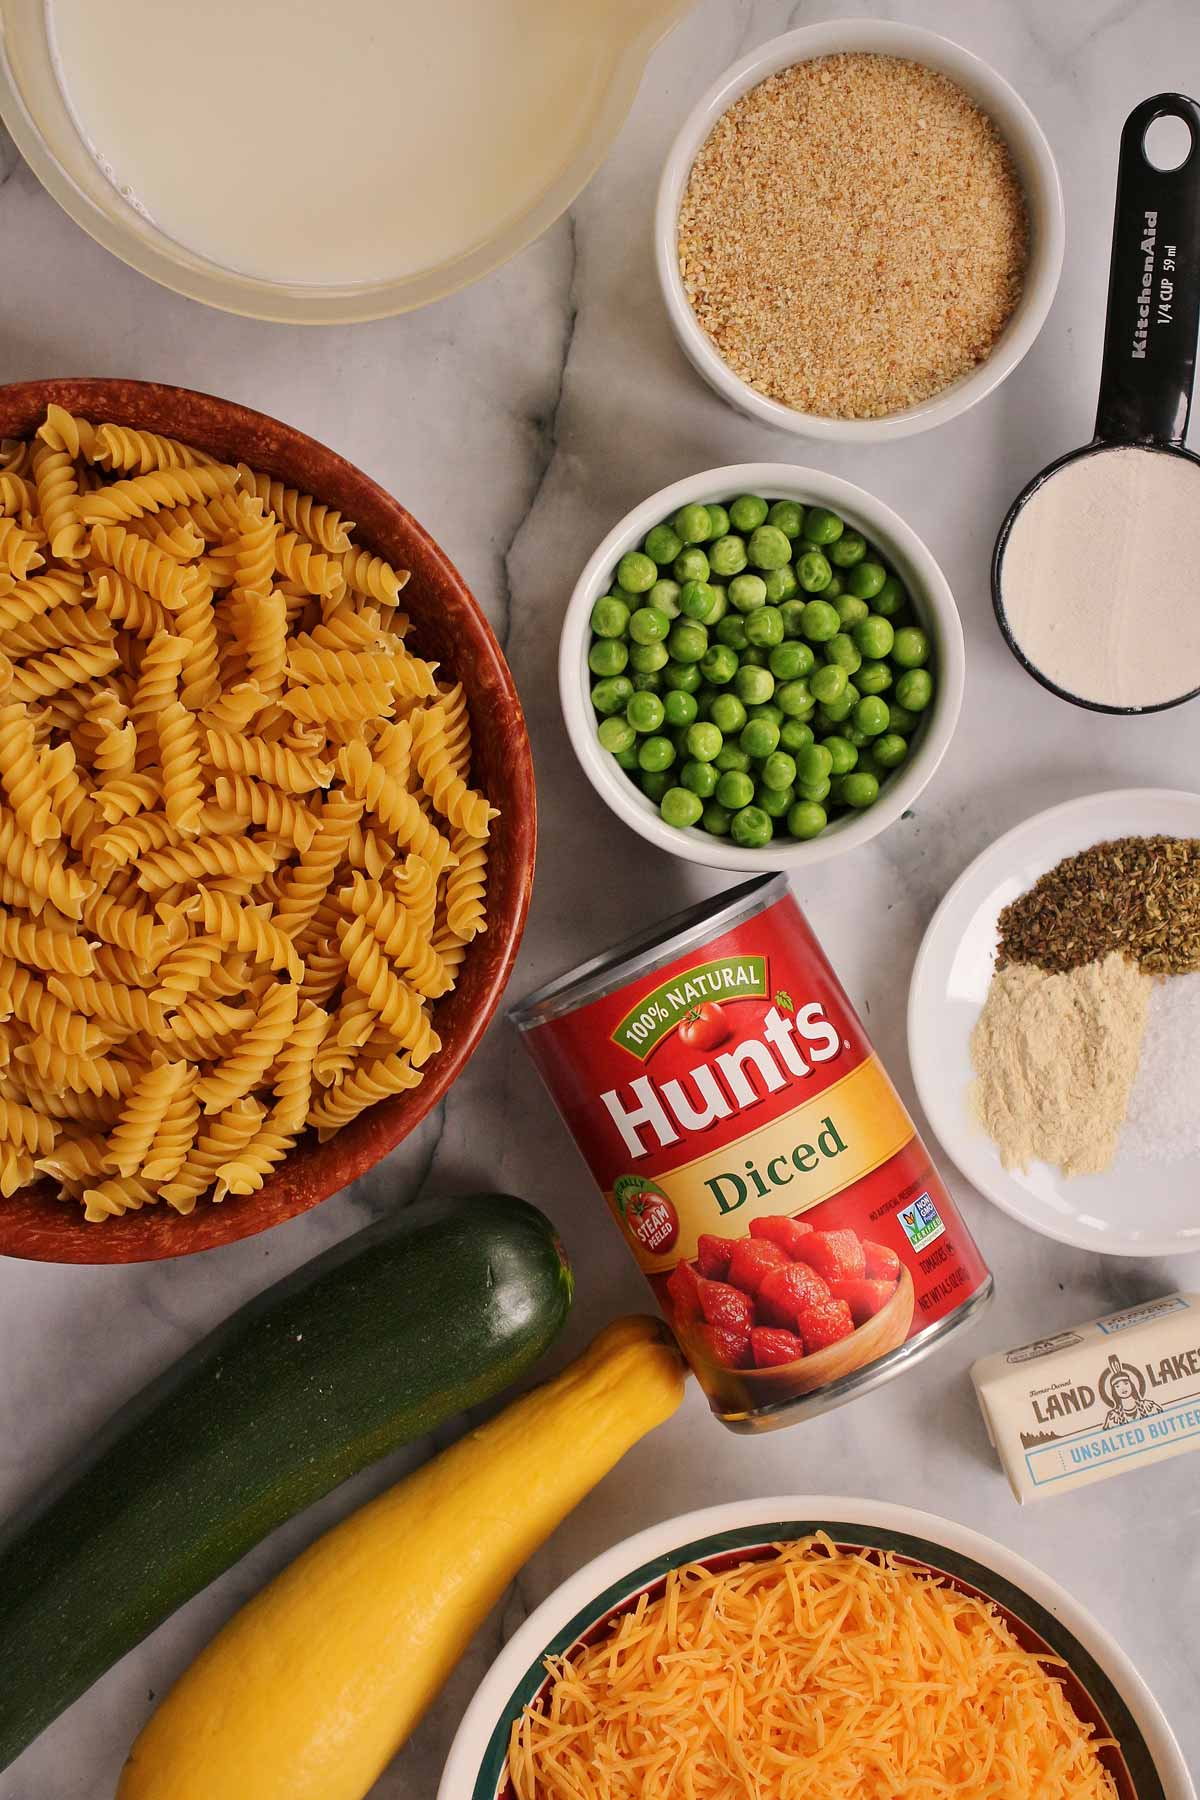 Rotini pasta, breadcrumbs, peas, zucchini, grated cheese, spices, butter, flour, and canned tomatoes.